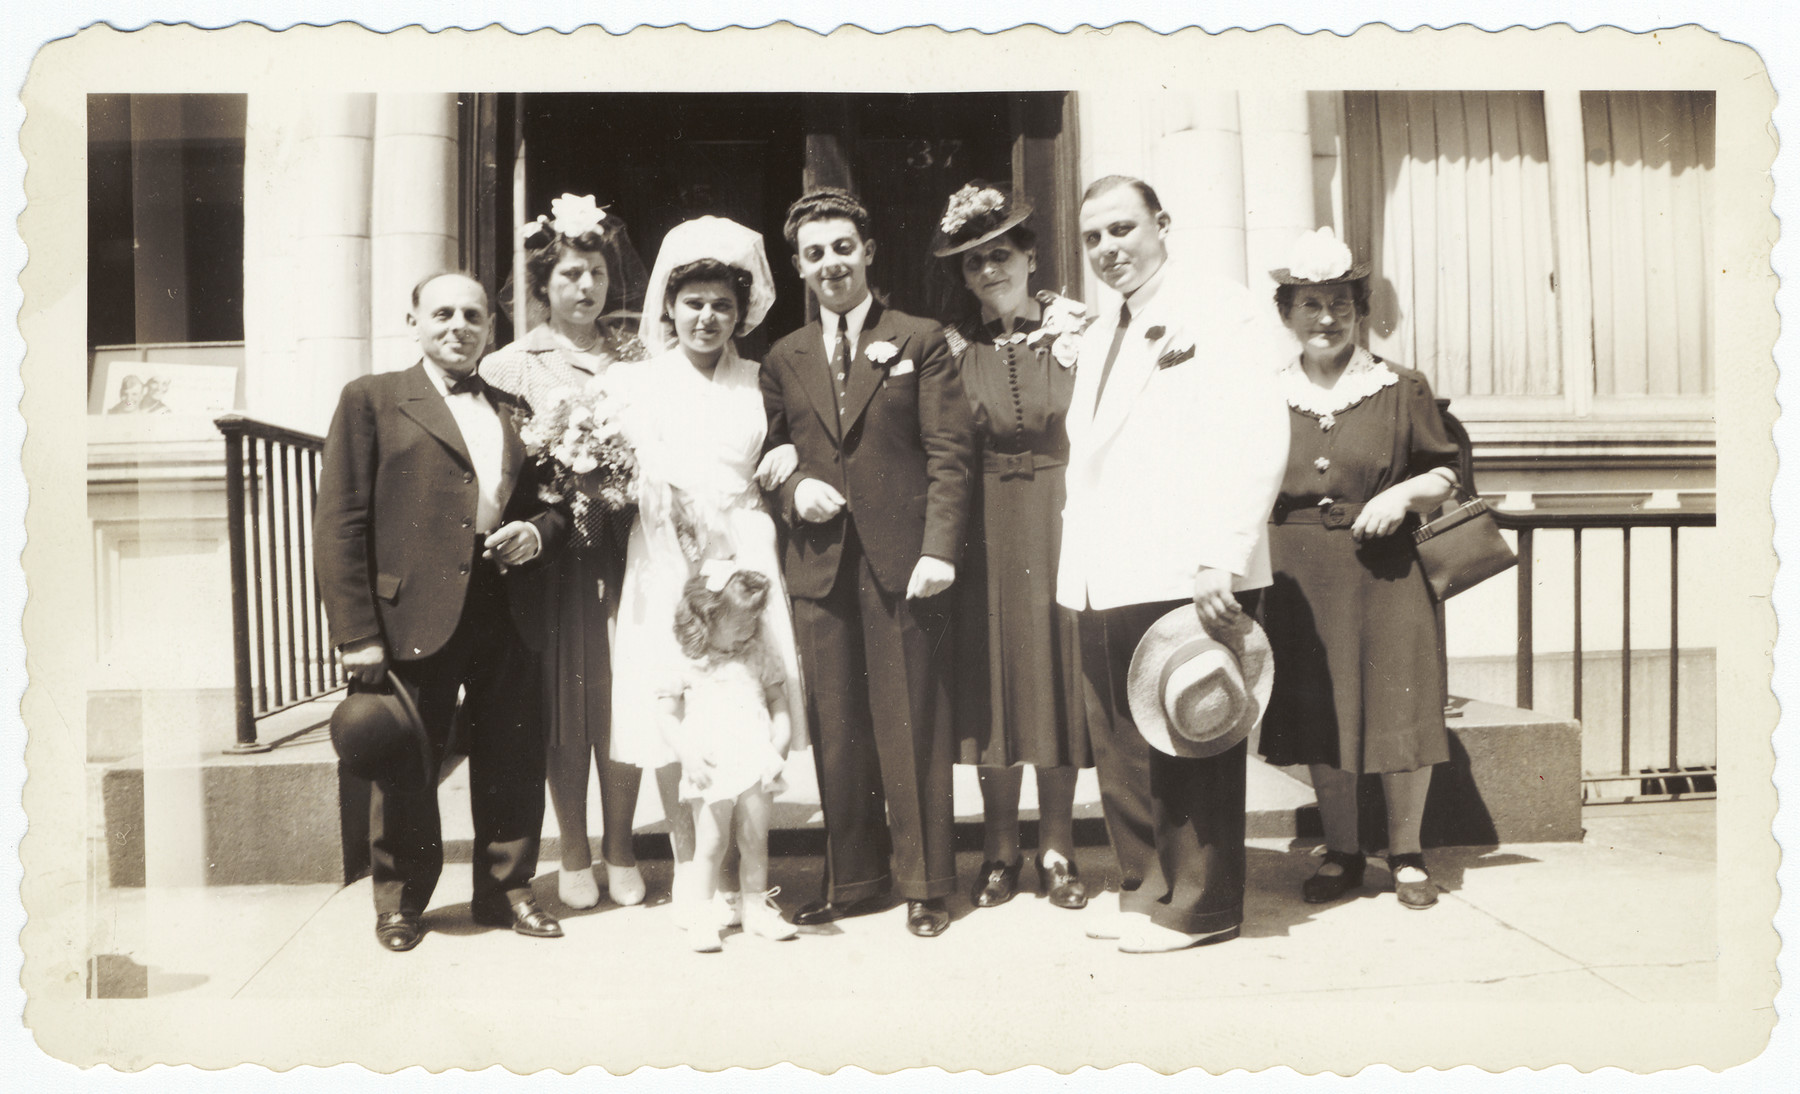 A German-Jewish couple celebrates their wedding surrounded by family members.  Pictured from left to right are Max Hausman (uncle of the groom), Ilse Flehinger (sister of the bride), Martha Sommer, Erwin Hirsch, Milly Hirsch (mother of the groom), Max Sommer (brother of the bride) and Ida Meyer (aunt of the bride).